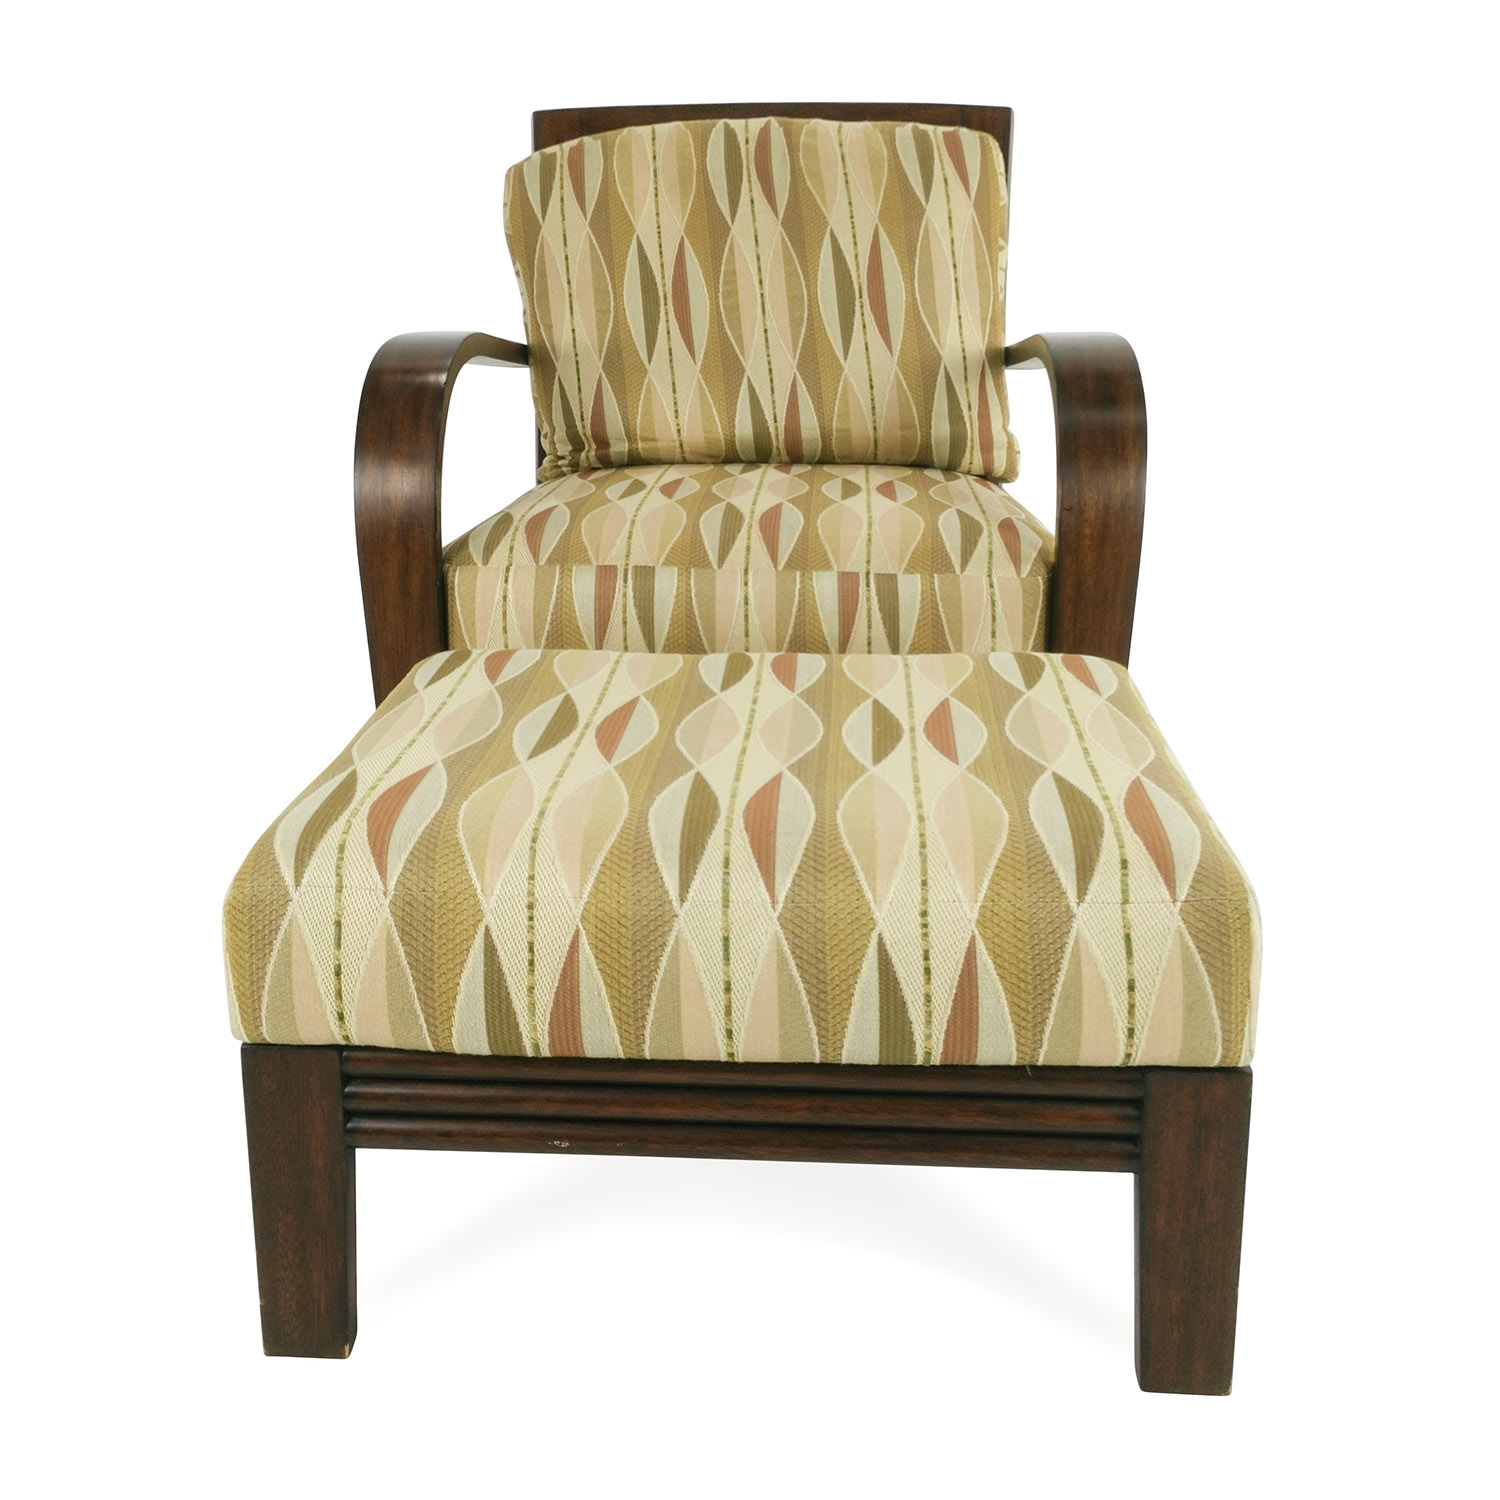 shop Ethan Allen Ethan Allen Lounge Chair and Ottoman online